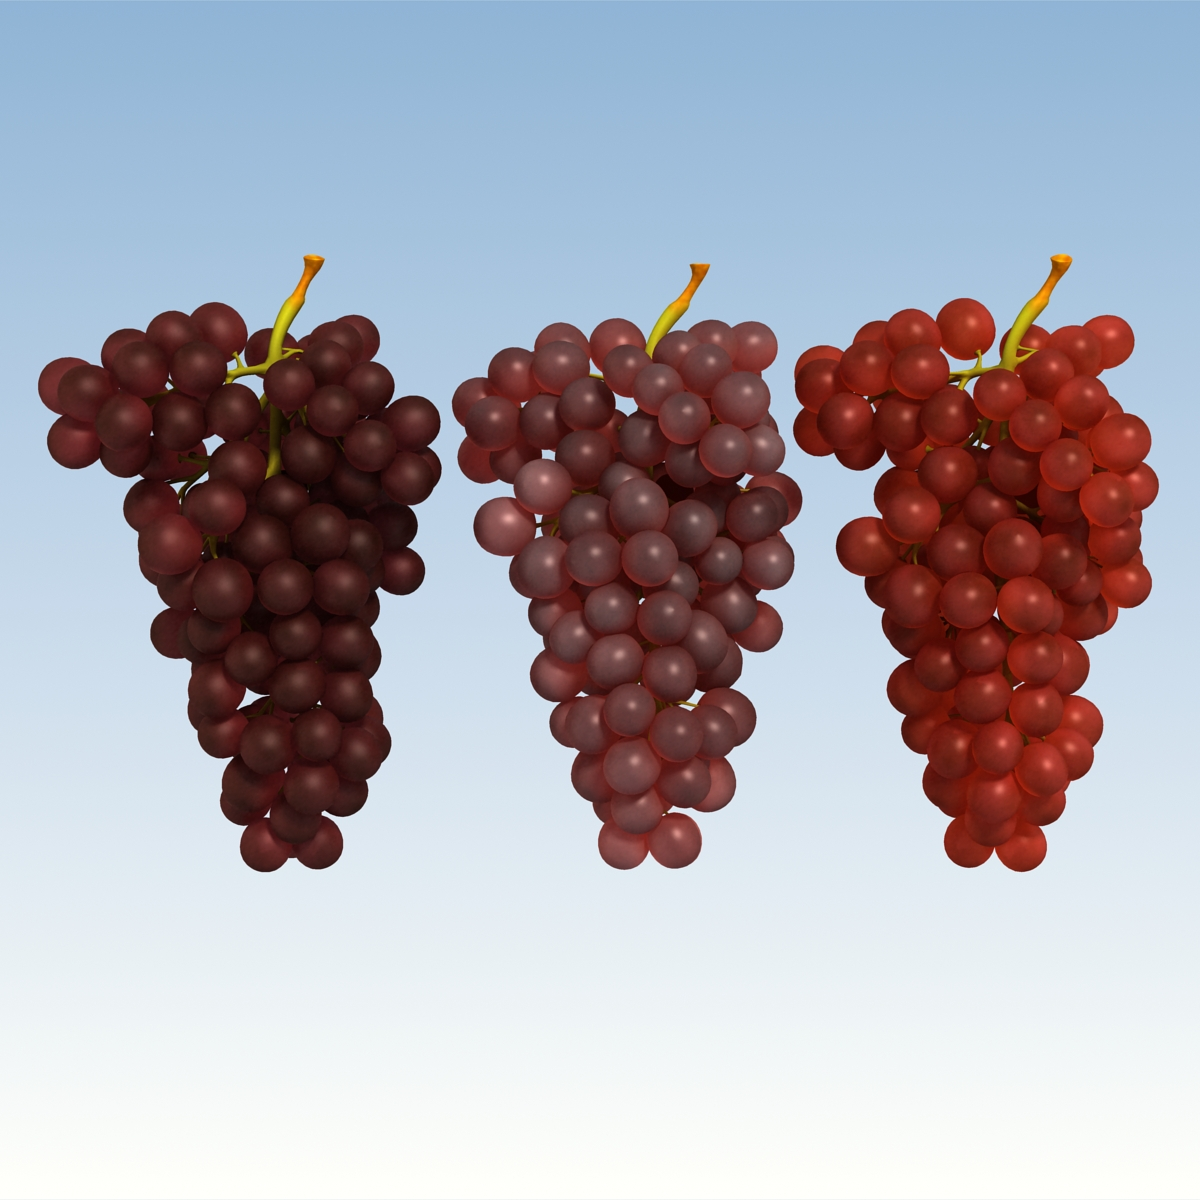 Grapes Red 3d model 3ds max fbx c4d lwo lws lw obj 204255